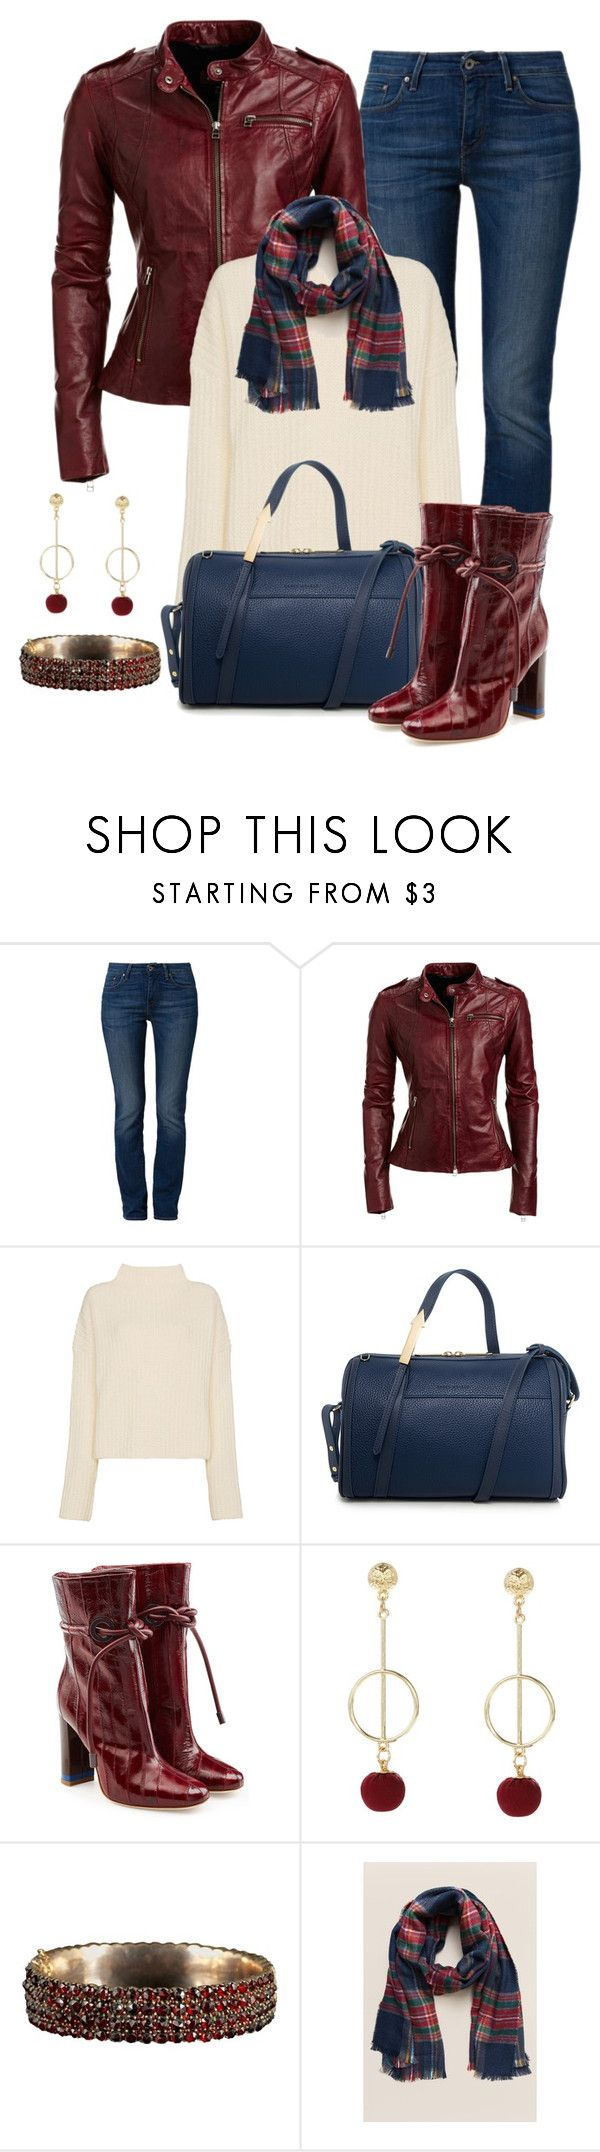 """""""Untitled #1592"""" by gallant81 ❤ liked on Polyvore featuring Levi's, Danier, Simon Miller, Joshua's, Malone Souliers and Francesca's"""